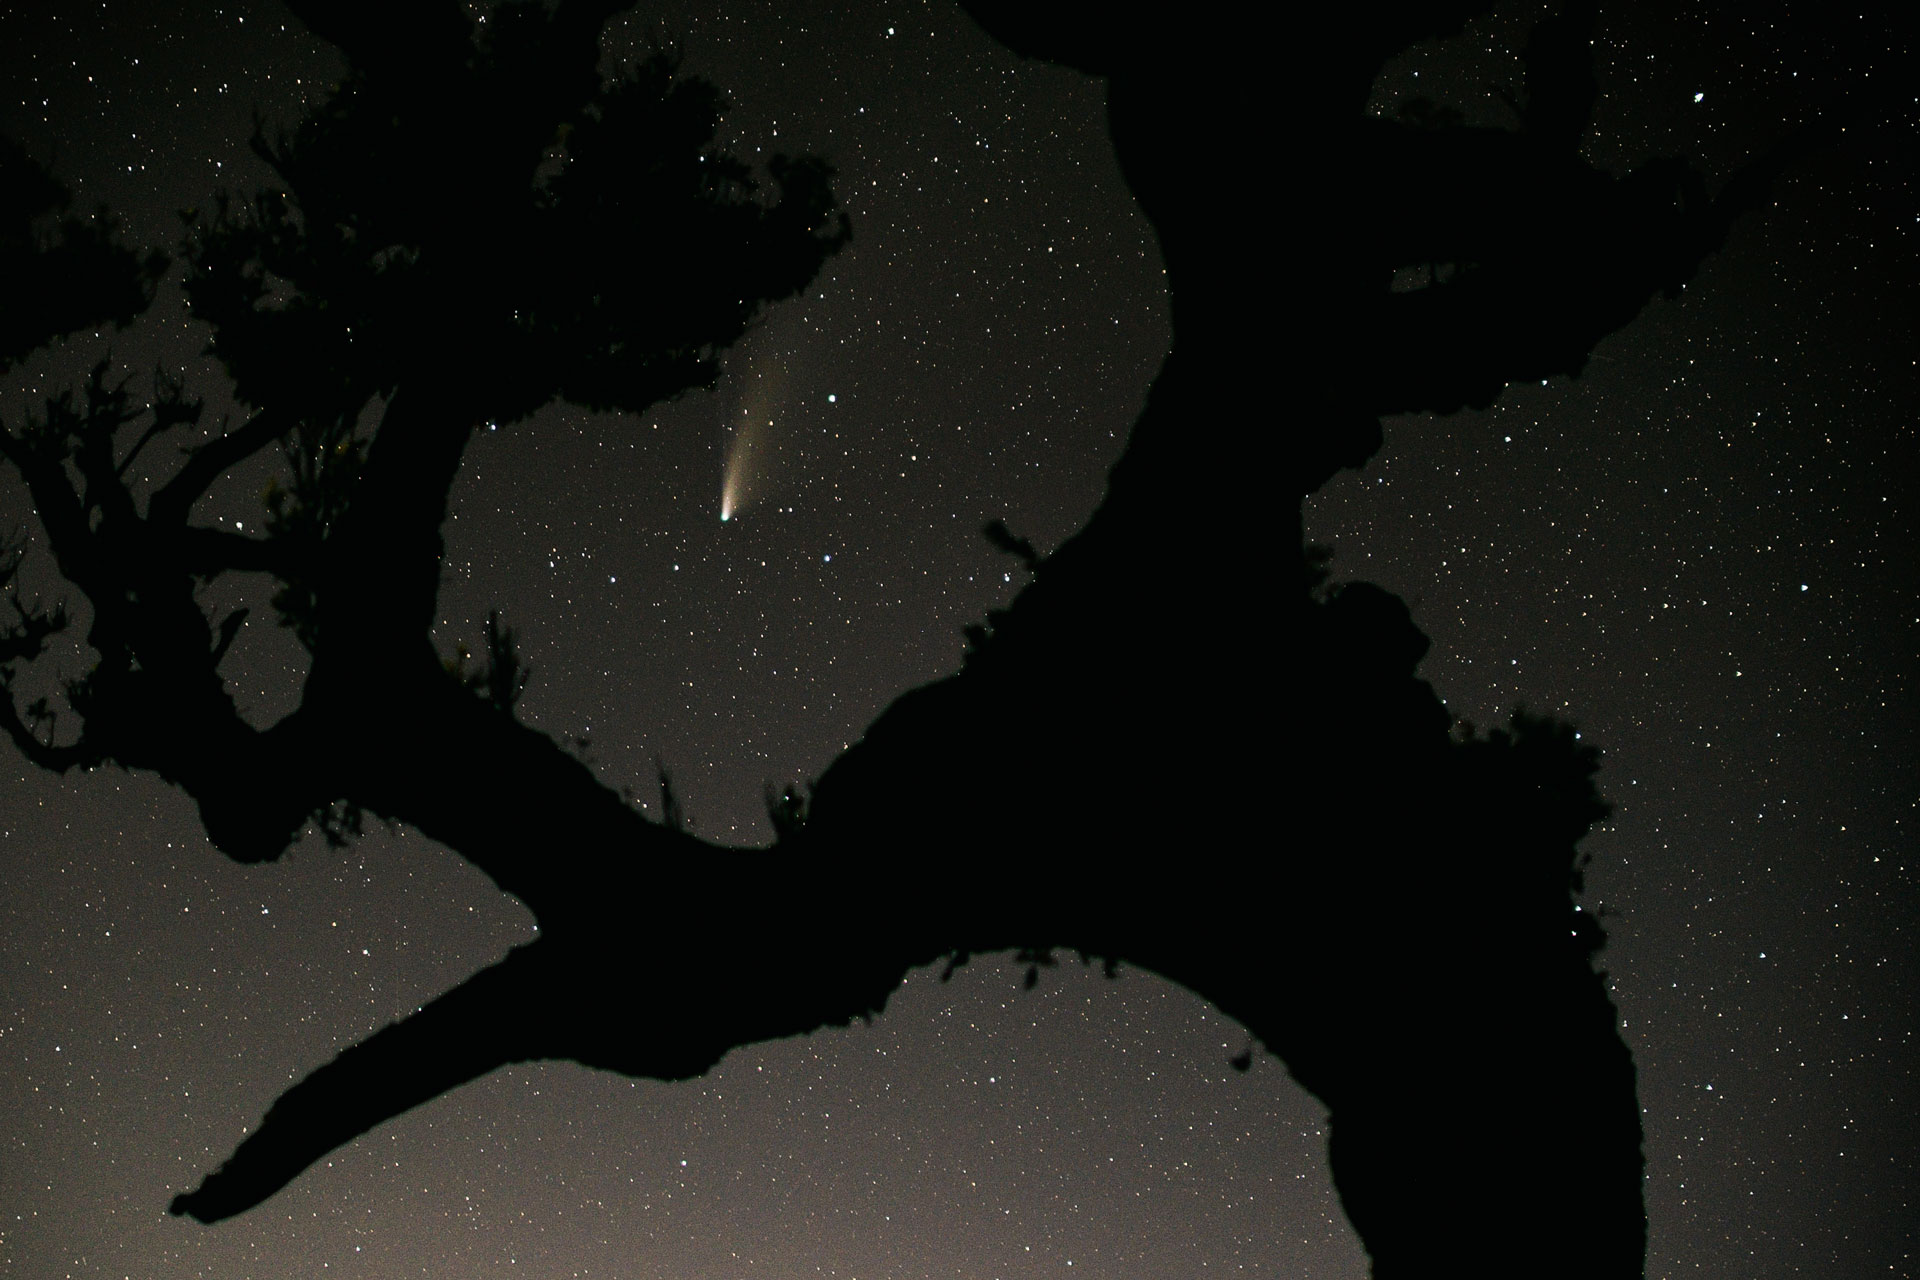 Neowise comet Madeira, Fanal